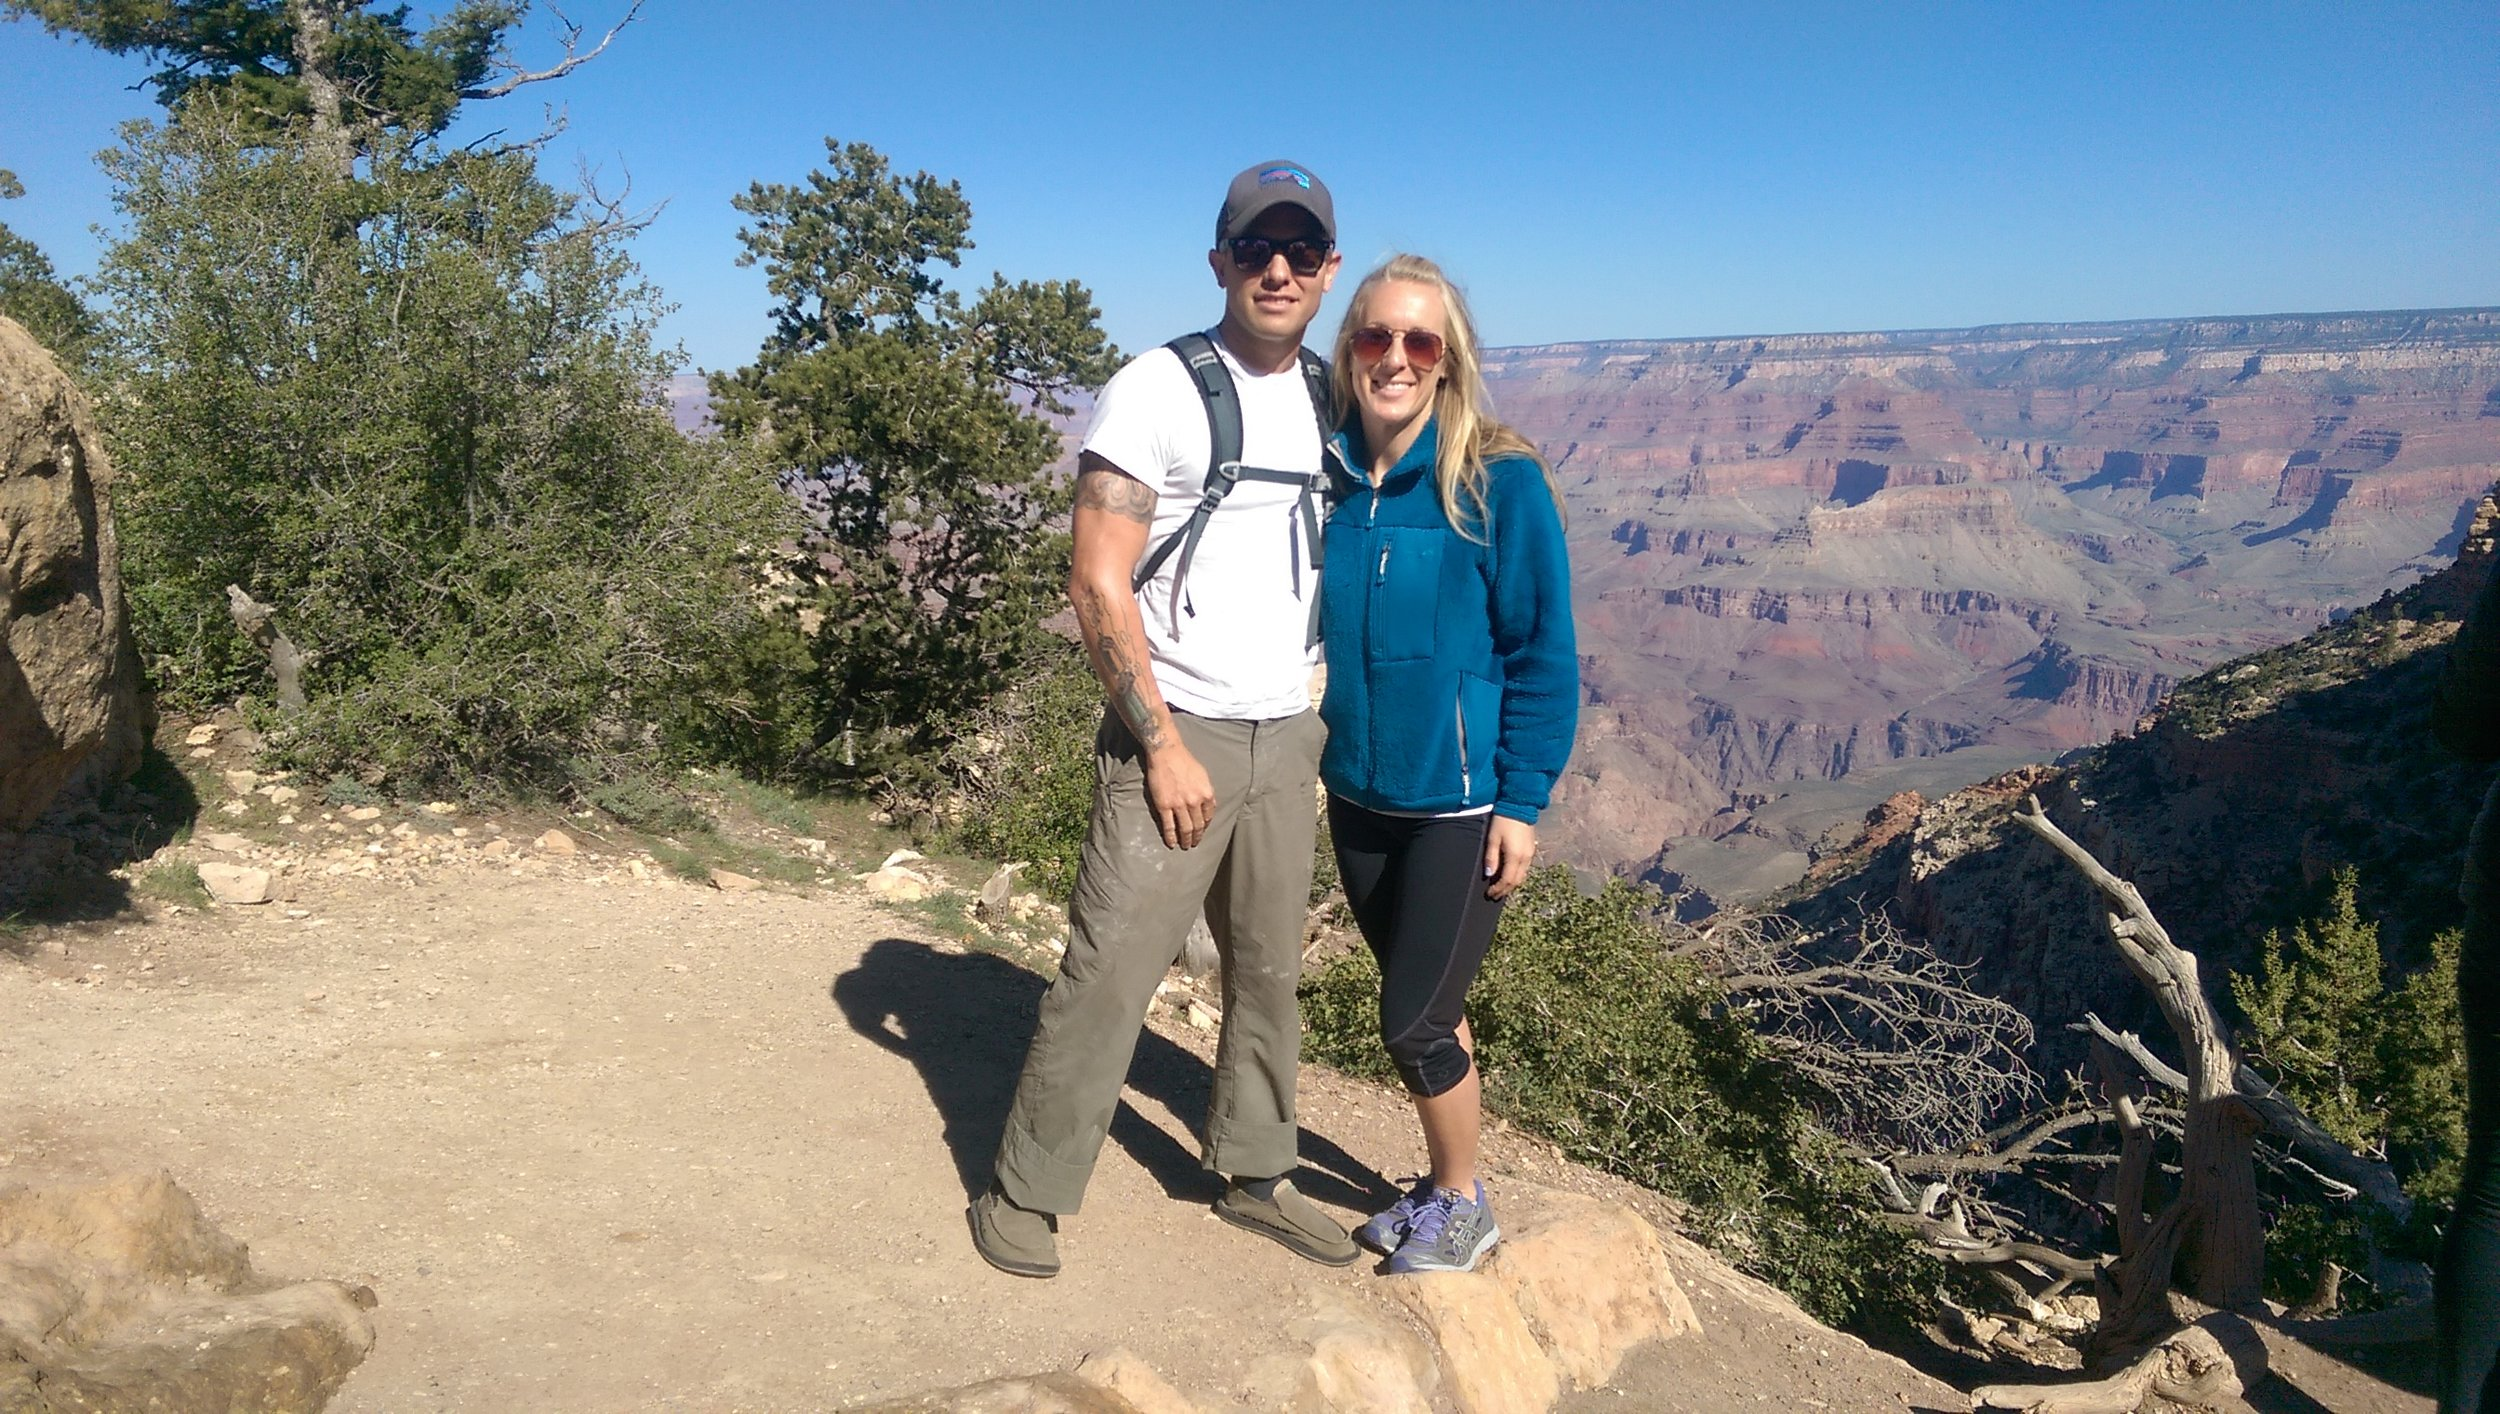 Liz and I at the Grand Canyon